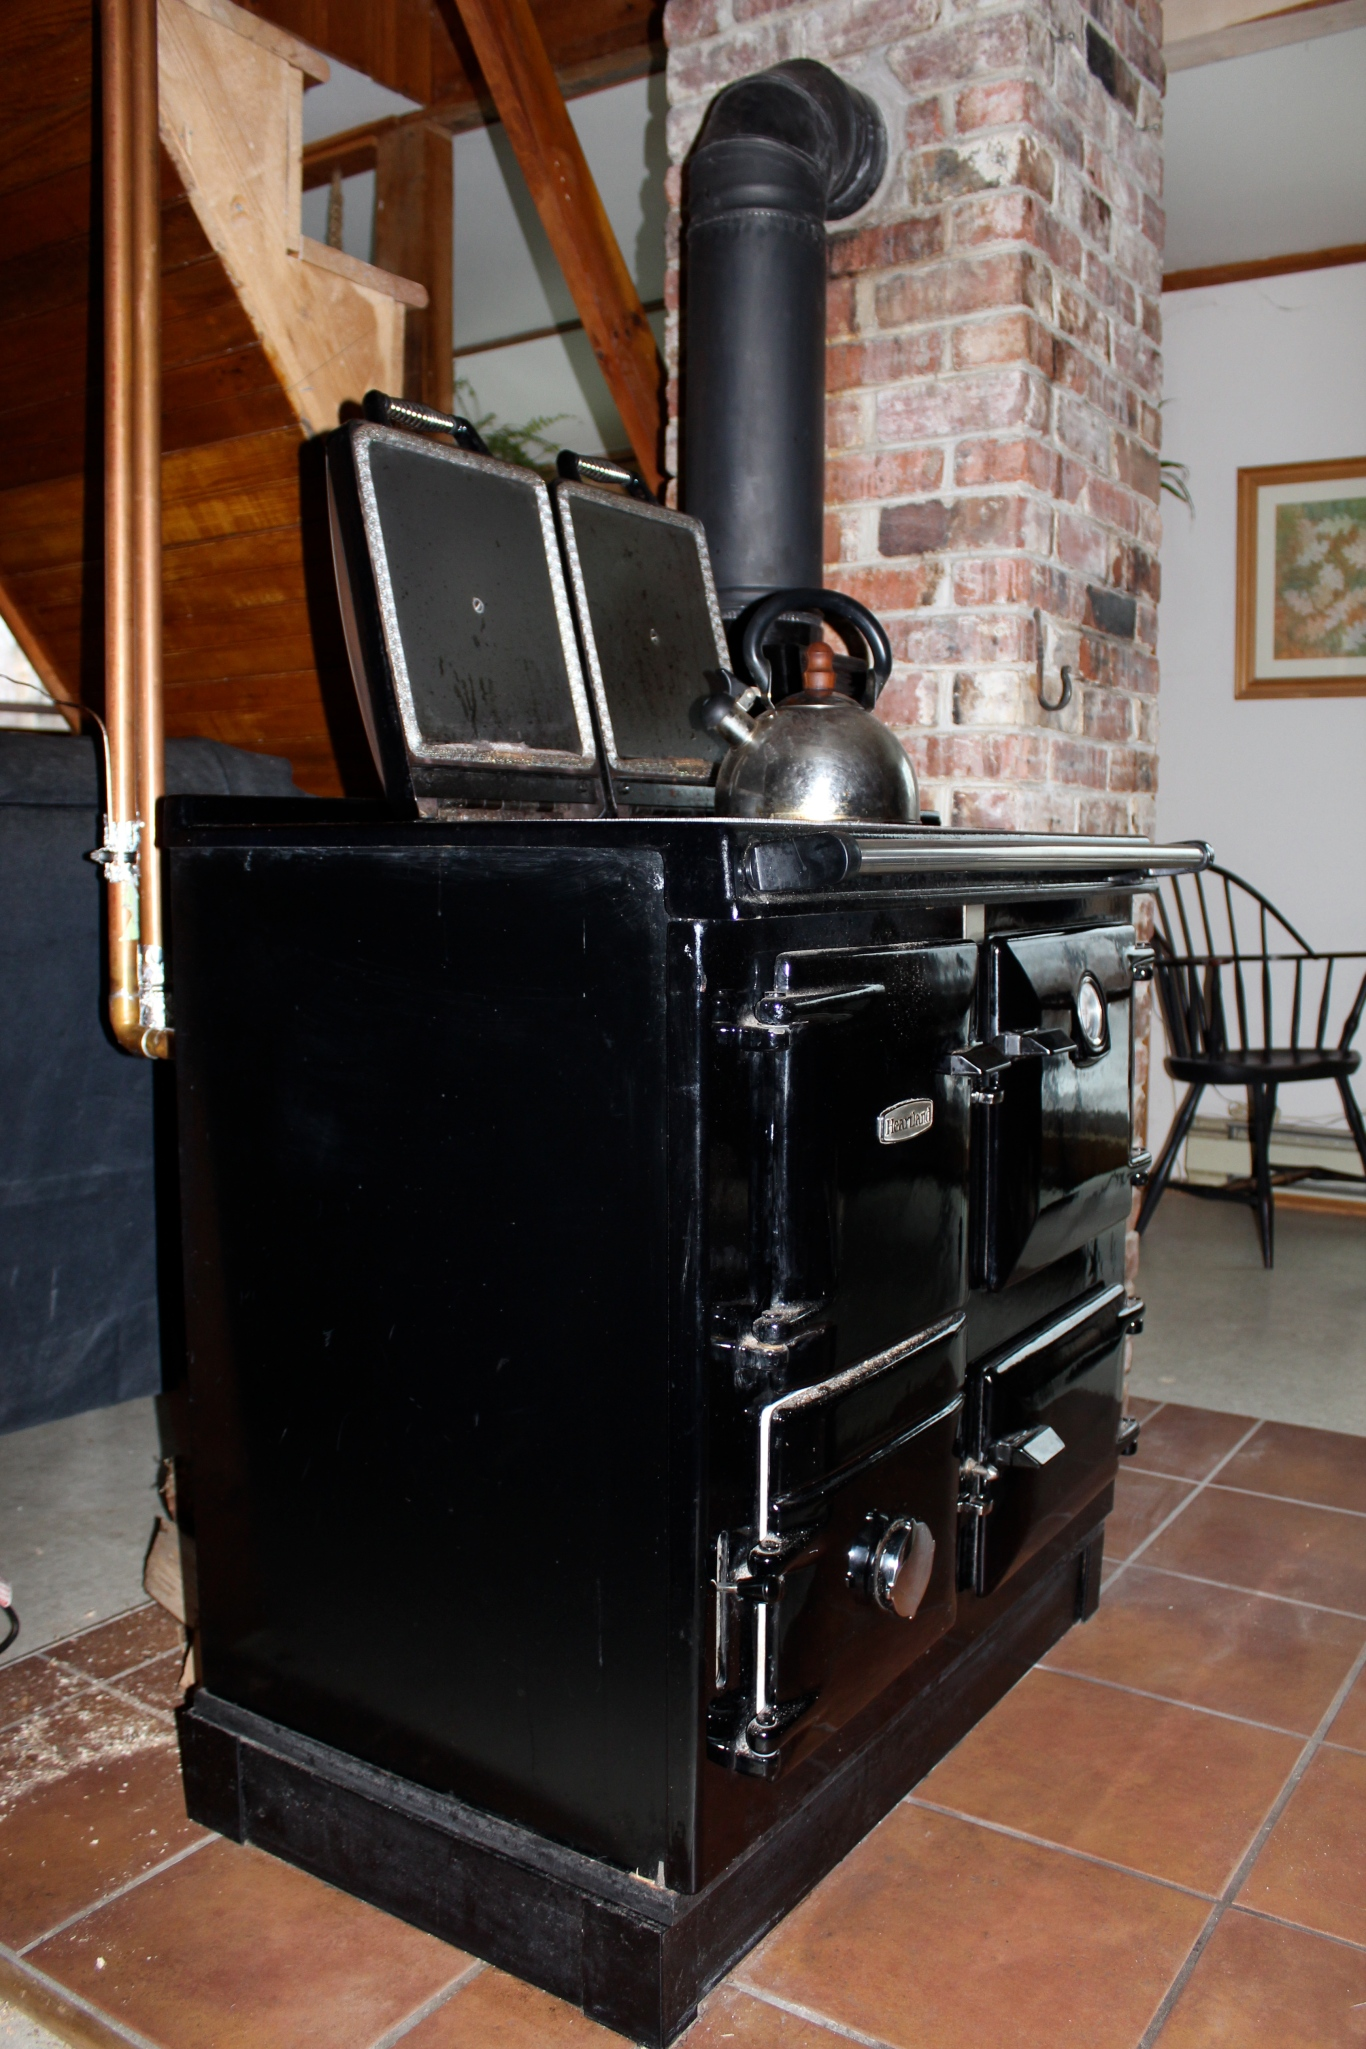 Rayburn cookstove with water jacket